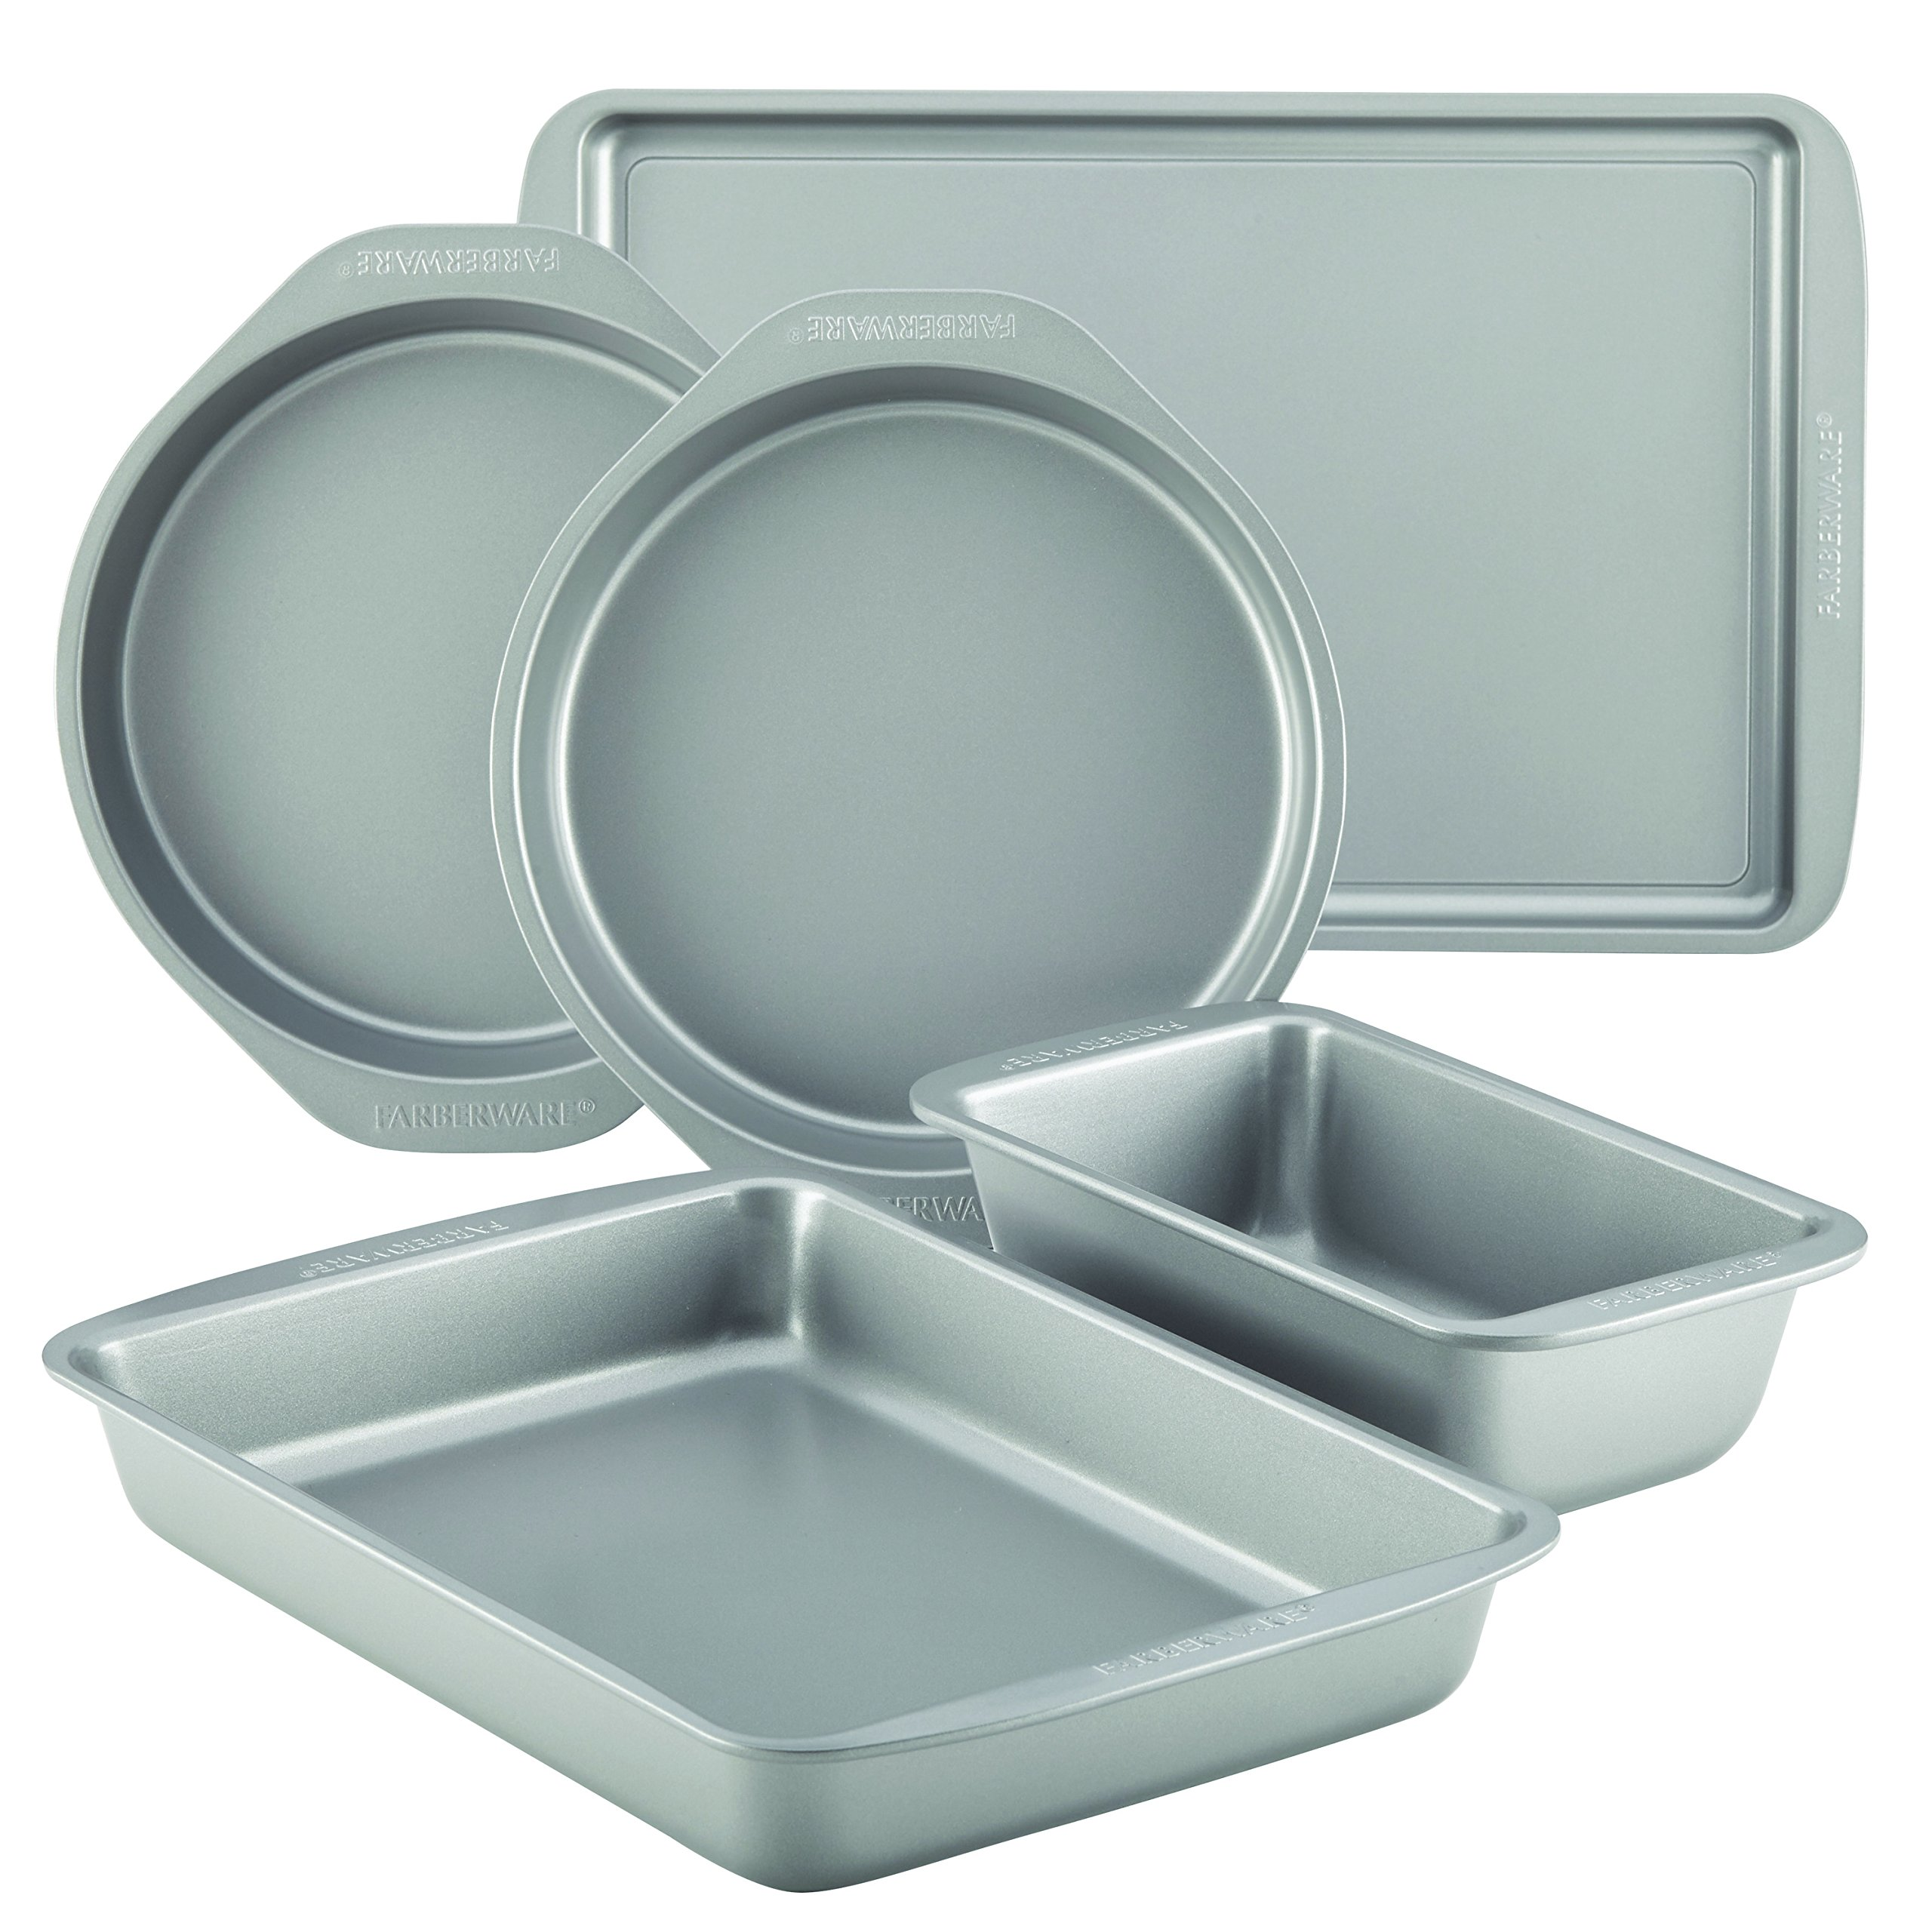 Farberware 46404 Nonstick Bakeware 5-Piece Baking Pan Set, Gray